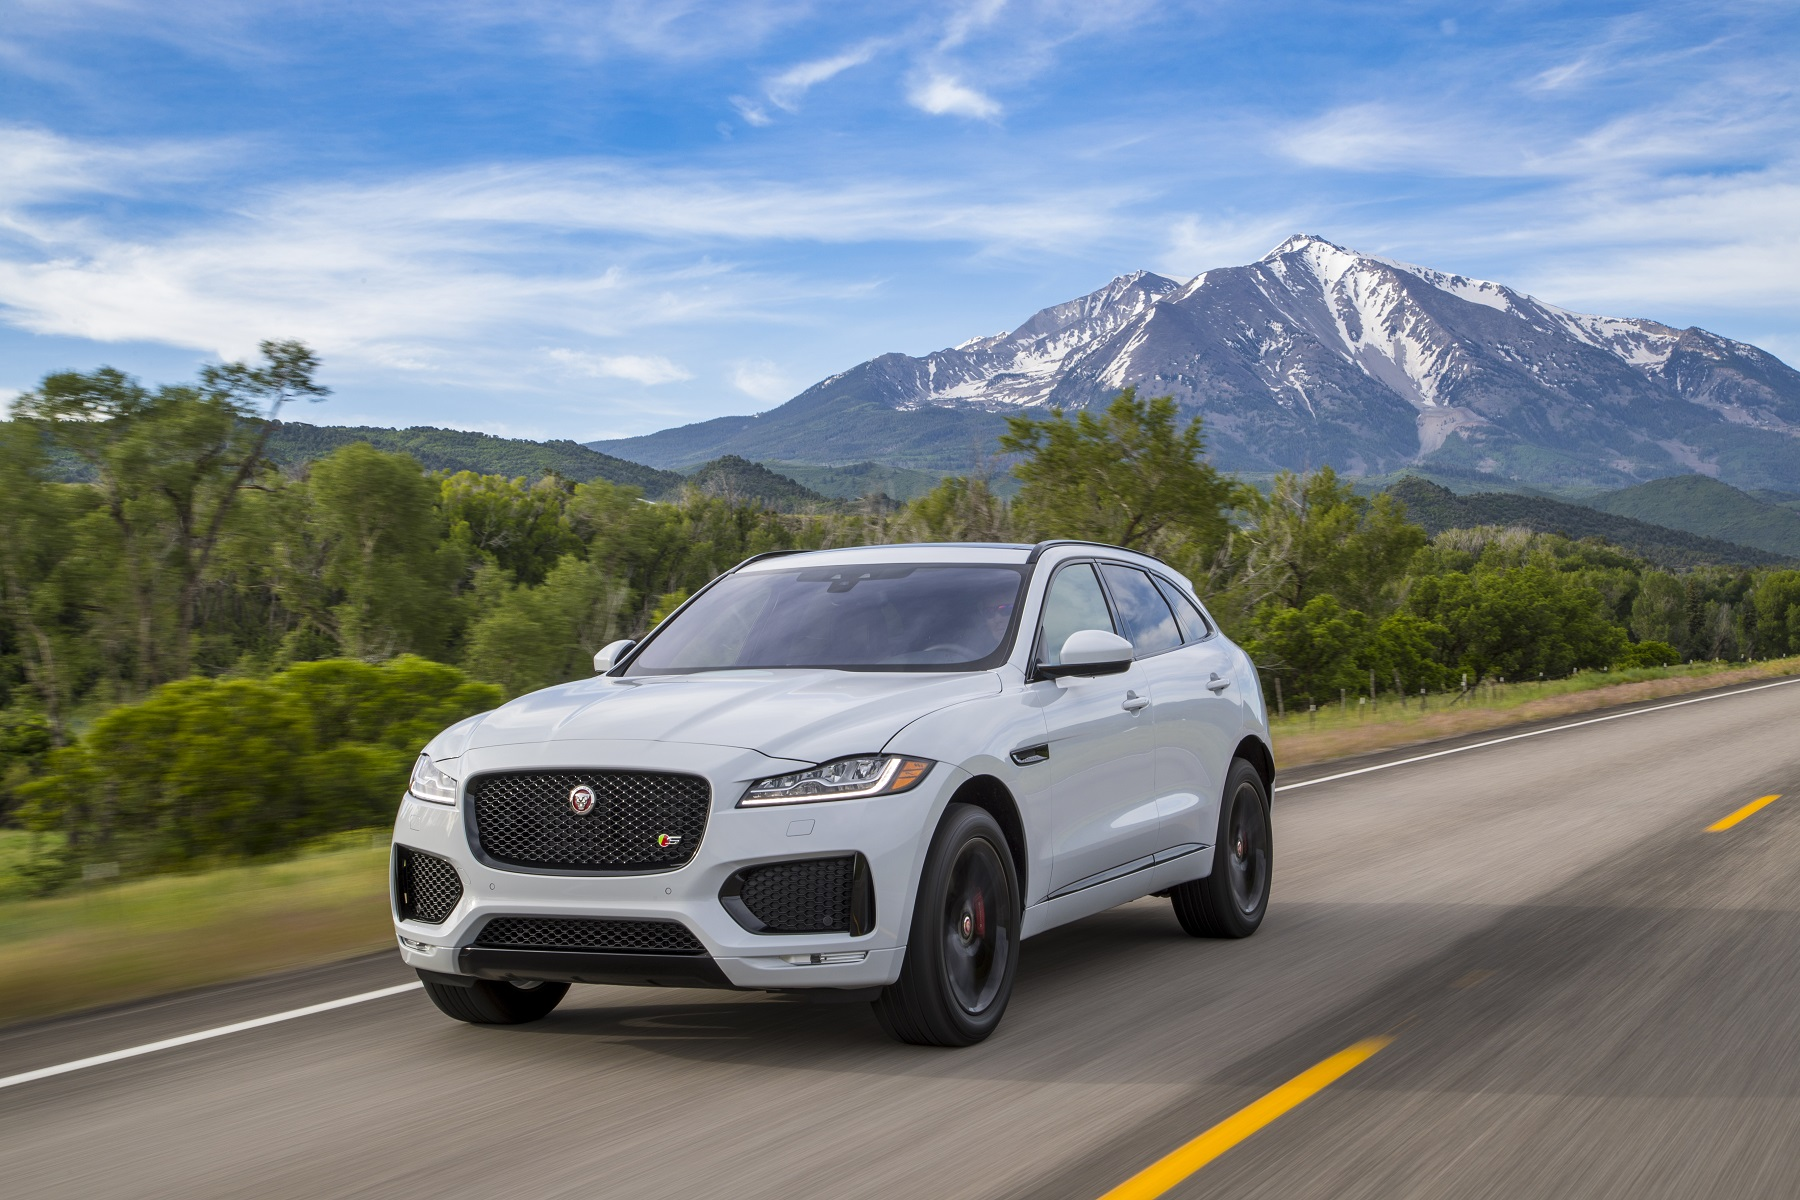 2017 F-Pace: Jaguar's All-New Crossover Vehicle - Get Off ...